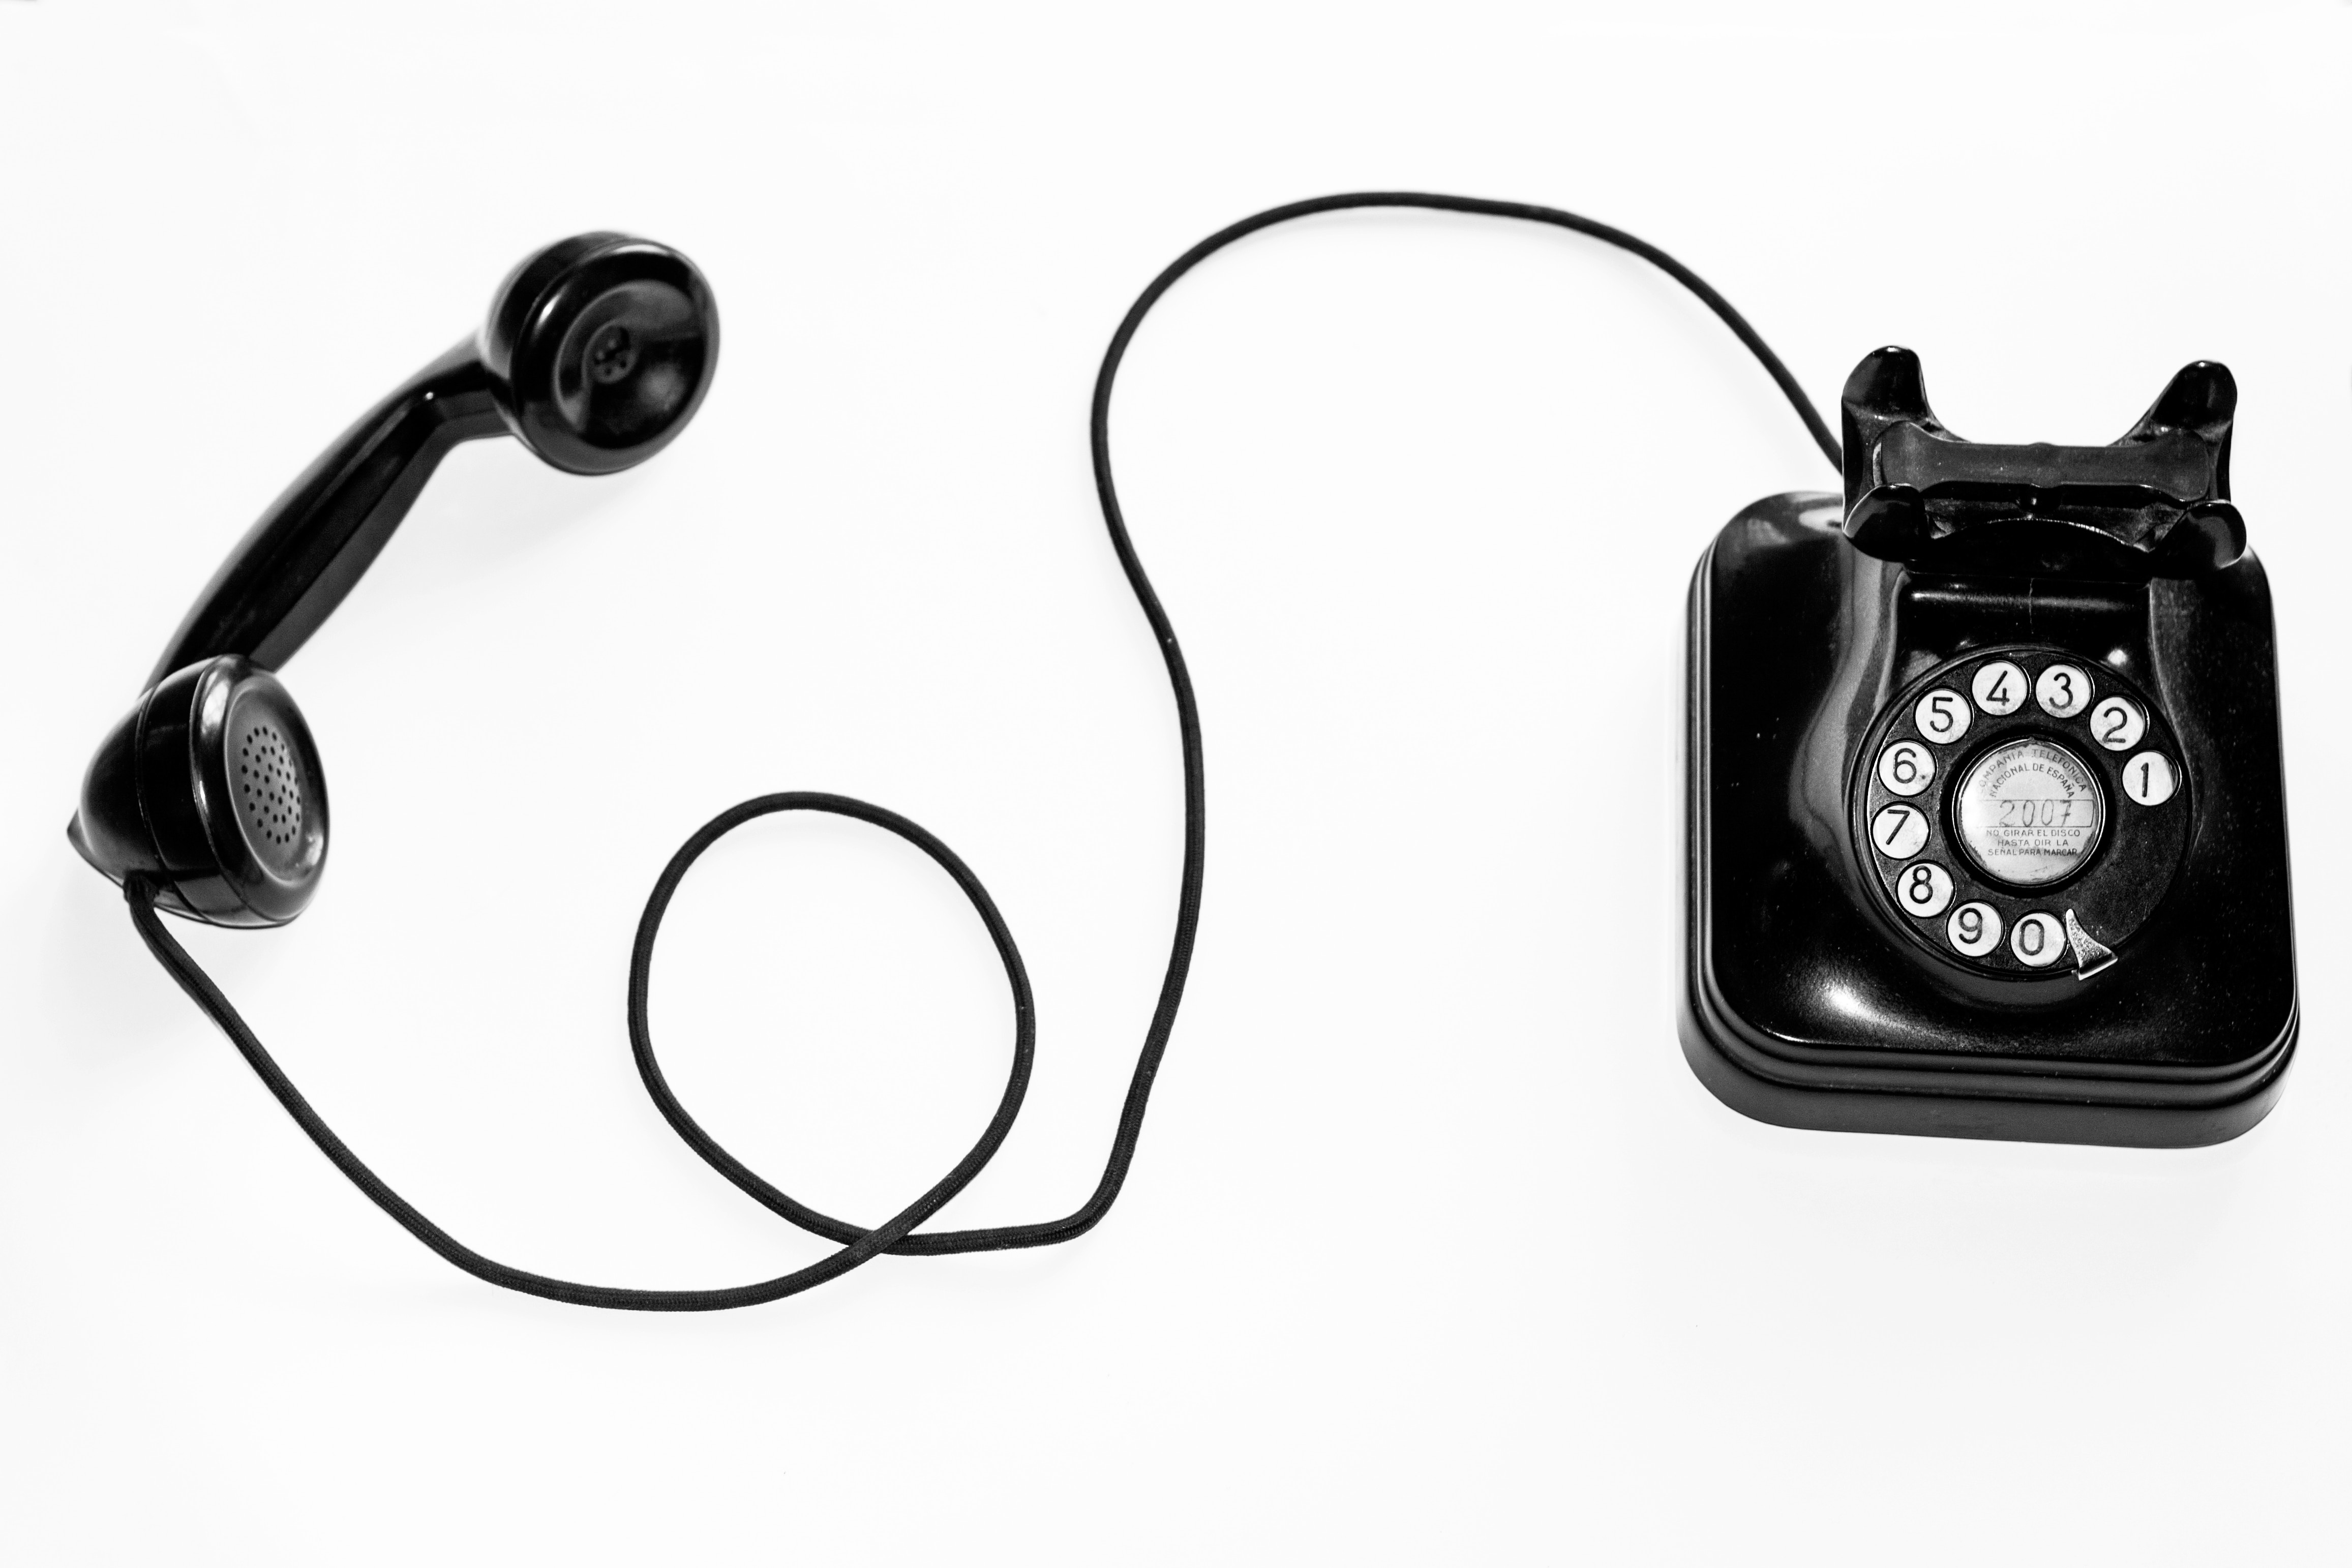 VoIP Telephone vs traditional lines